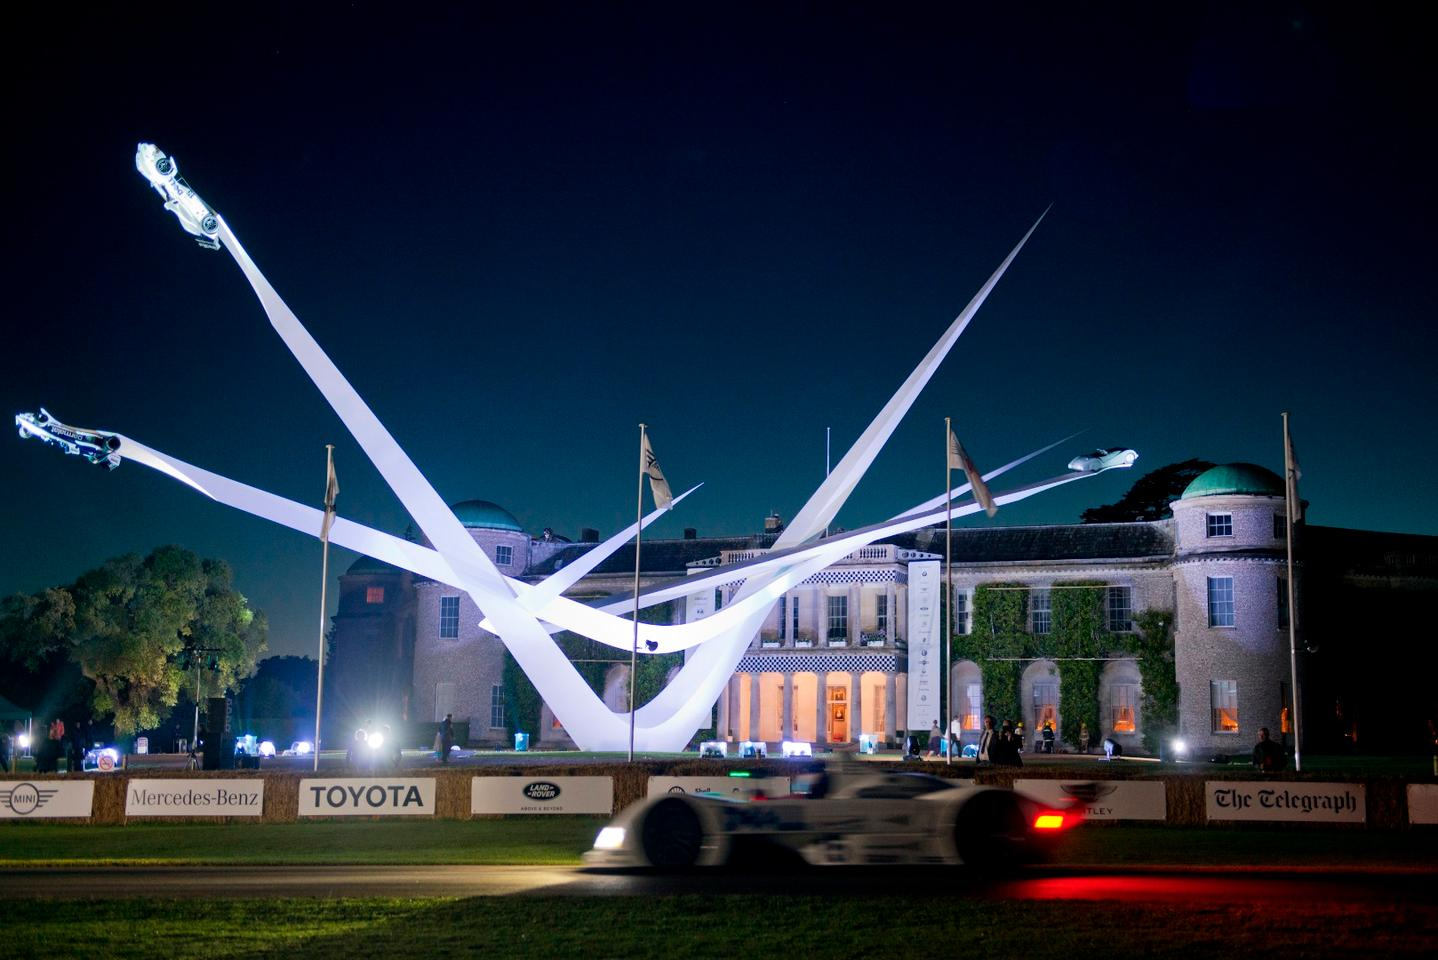 BMW was this year's featured marque at the Goodwood Festival of Speed